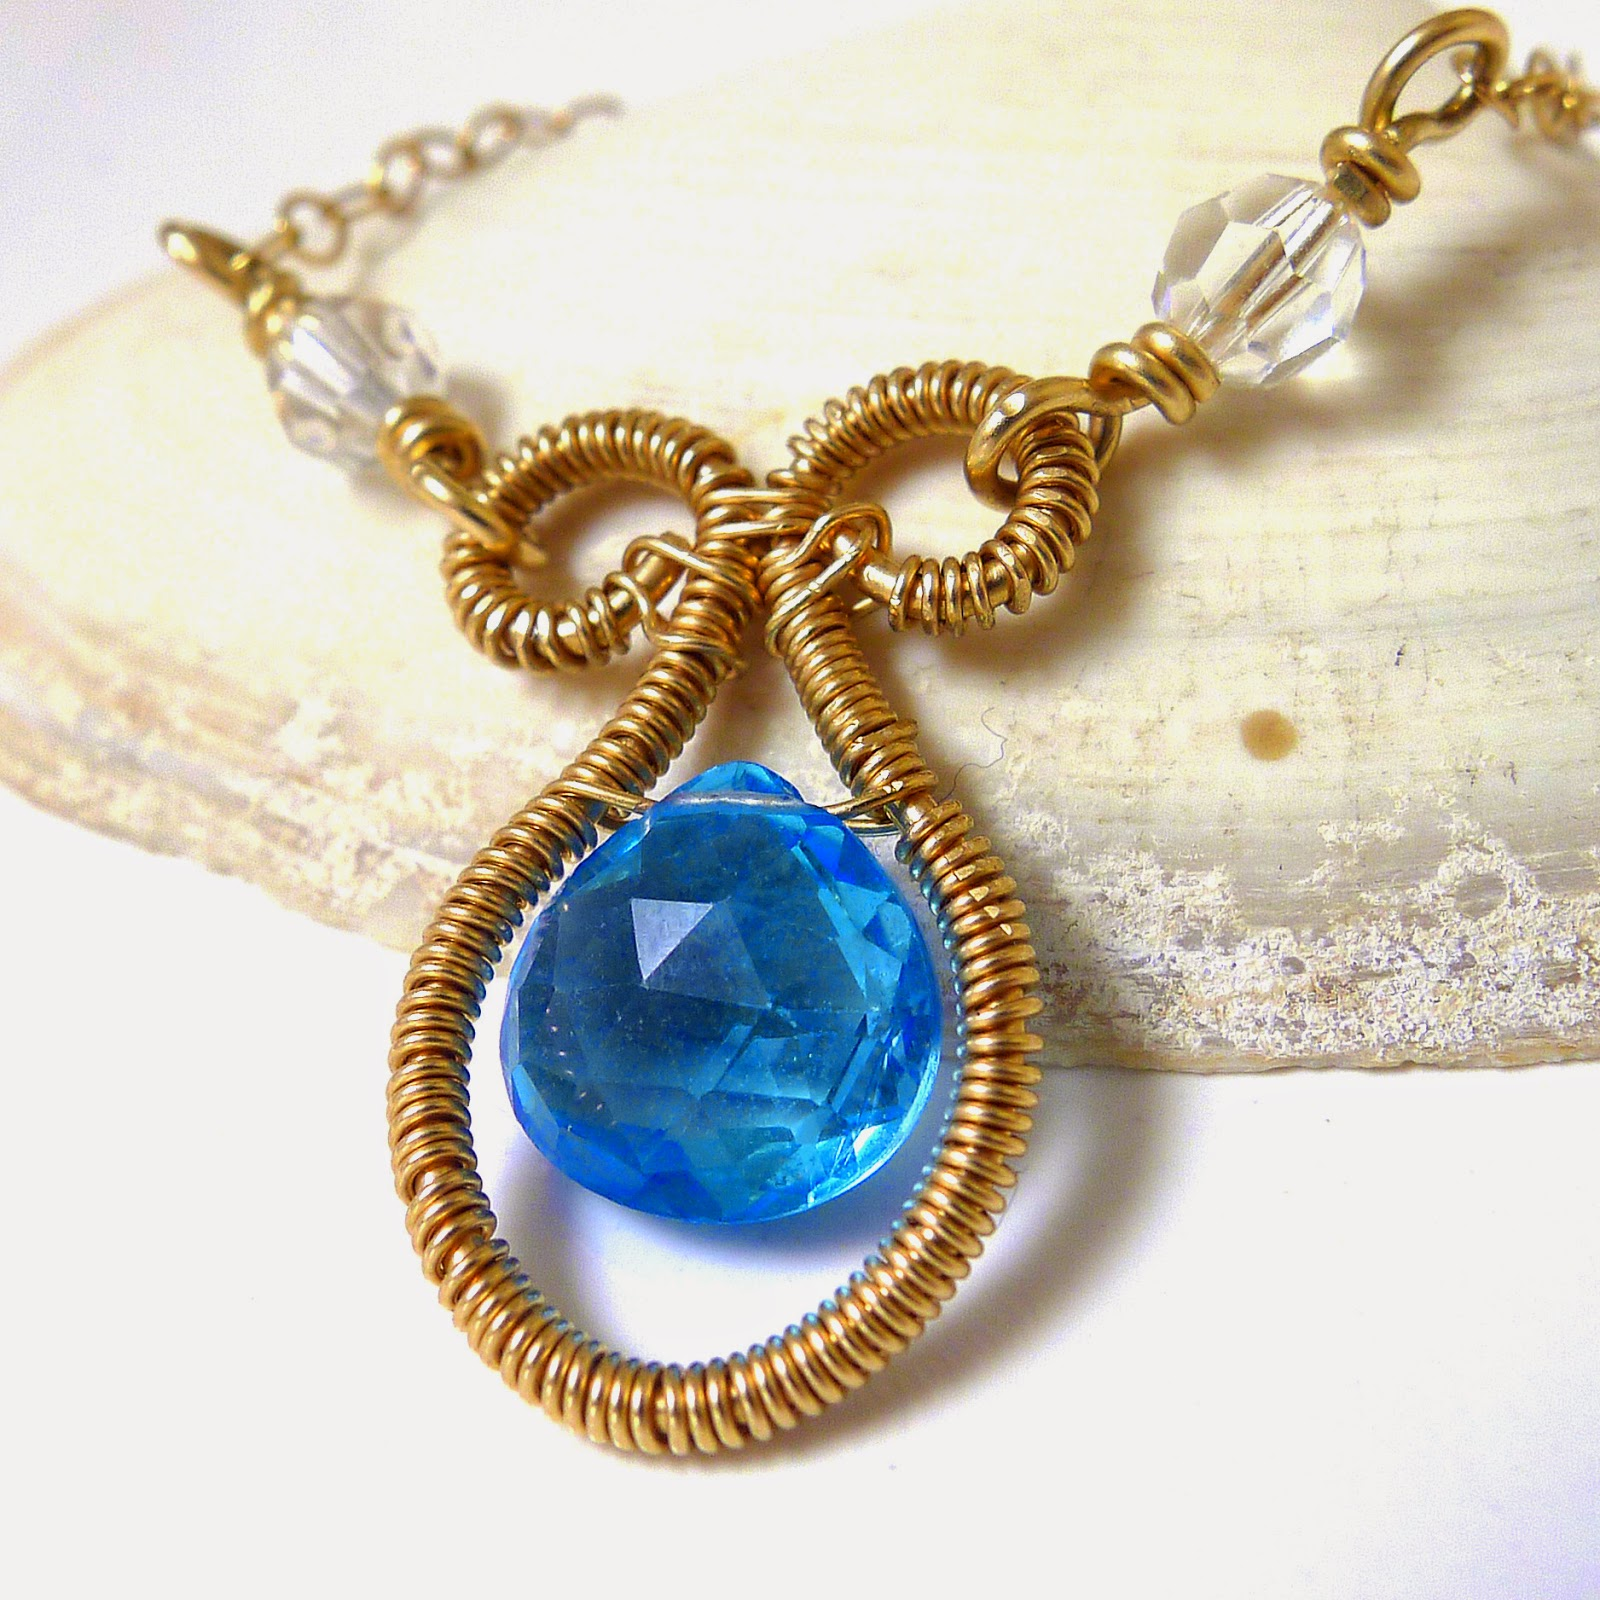 http://www.shazzabethcreations.co.nz/#!product/prd1/2522075541/swiss-blue-topaz-and-crystal-gold-necklace